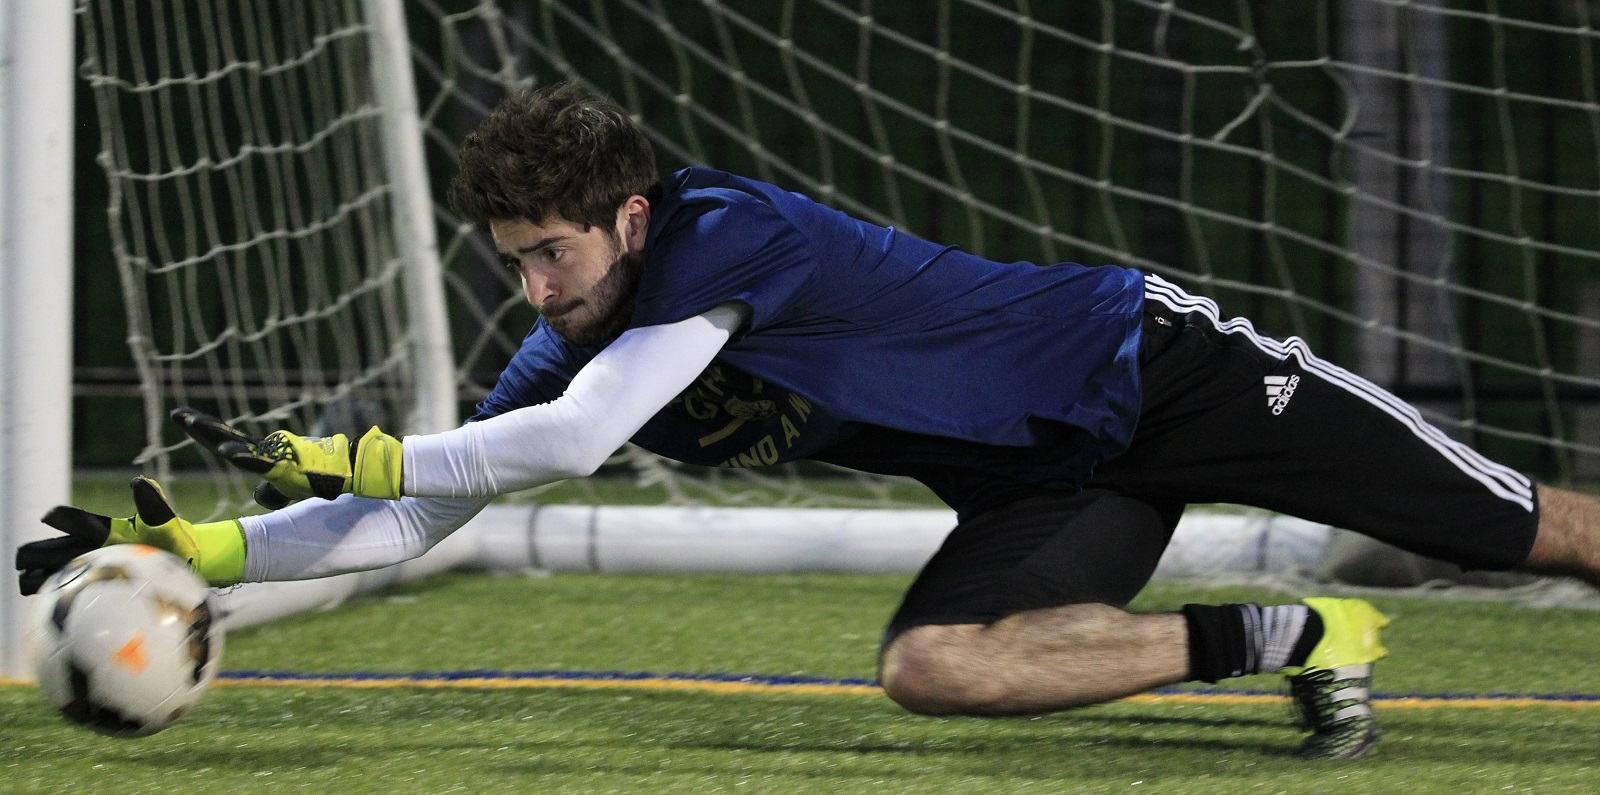 FC Buffalo goalkeeper Nick Jeffs dives to make a save during training. (Harry Scull Jr./Buffalo News)